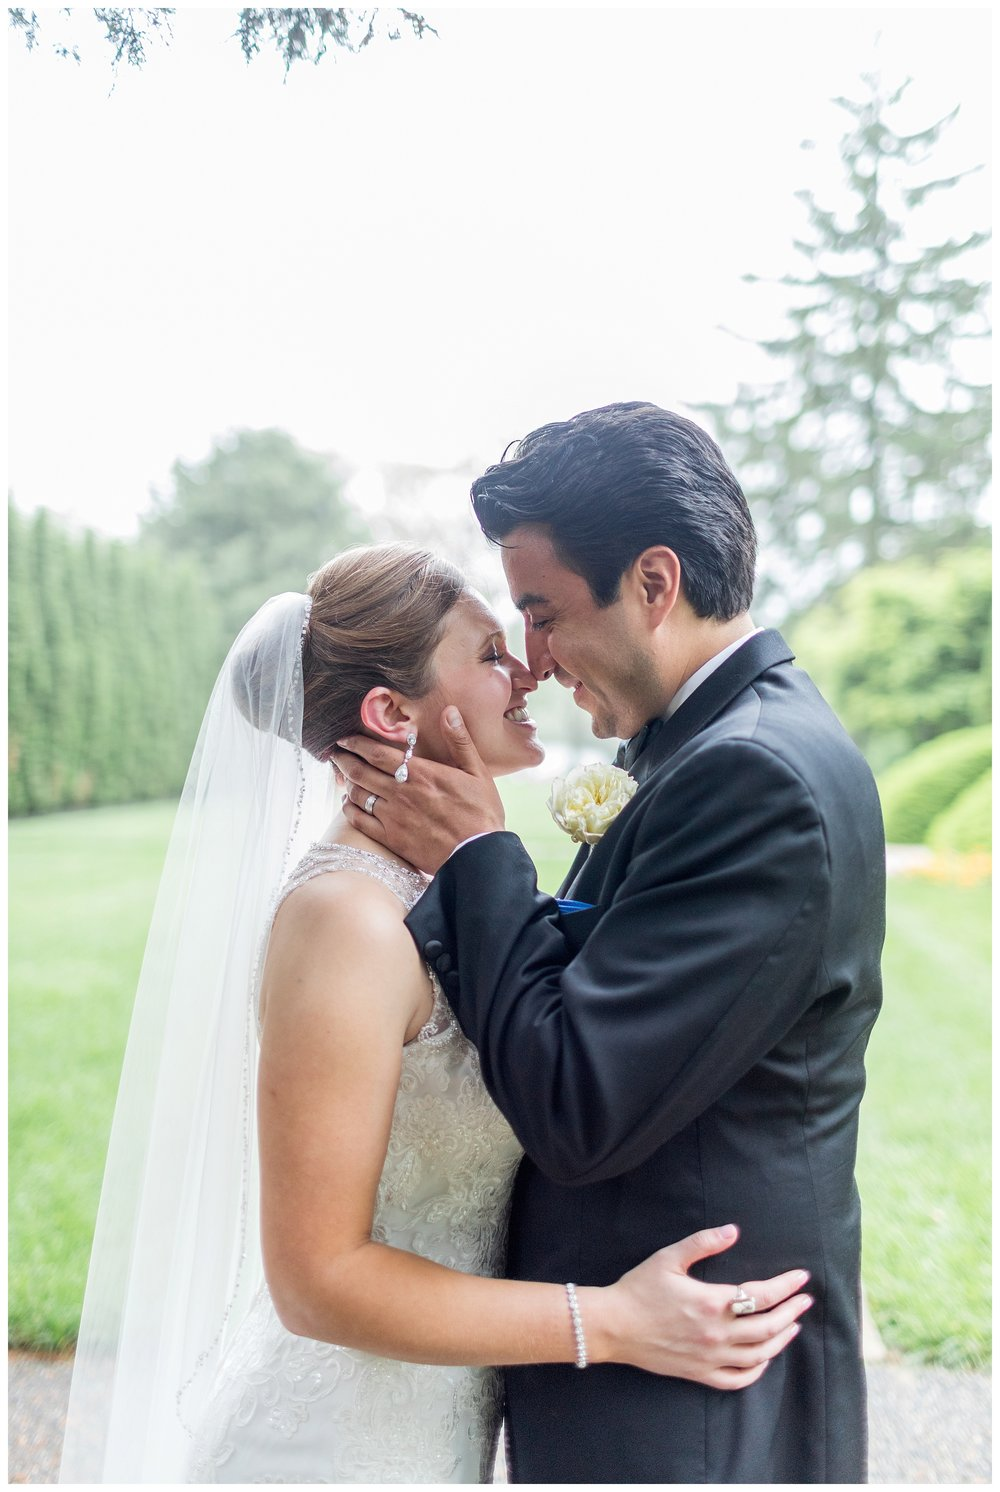 The Mansion at Valley Country Club Wedding Maryland Wedding Photographer Kir Tuben_0000.jpg